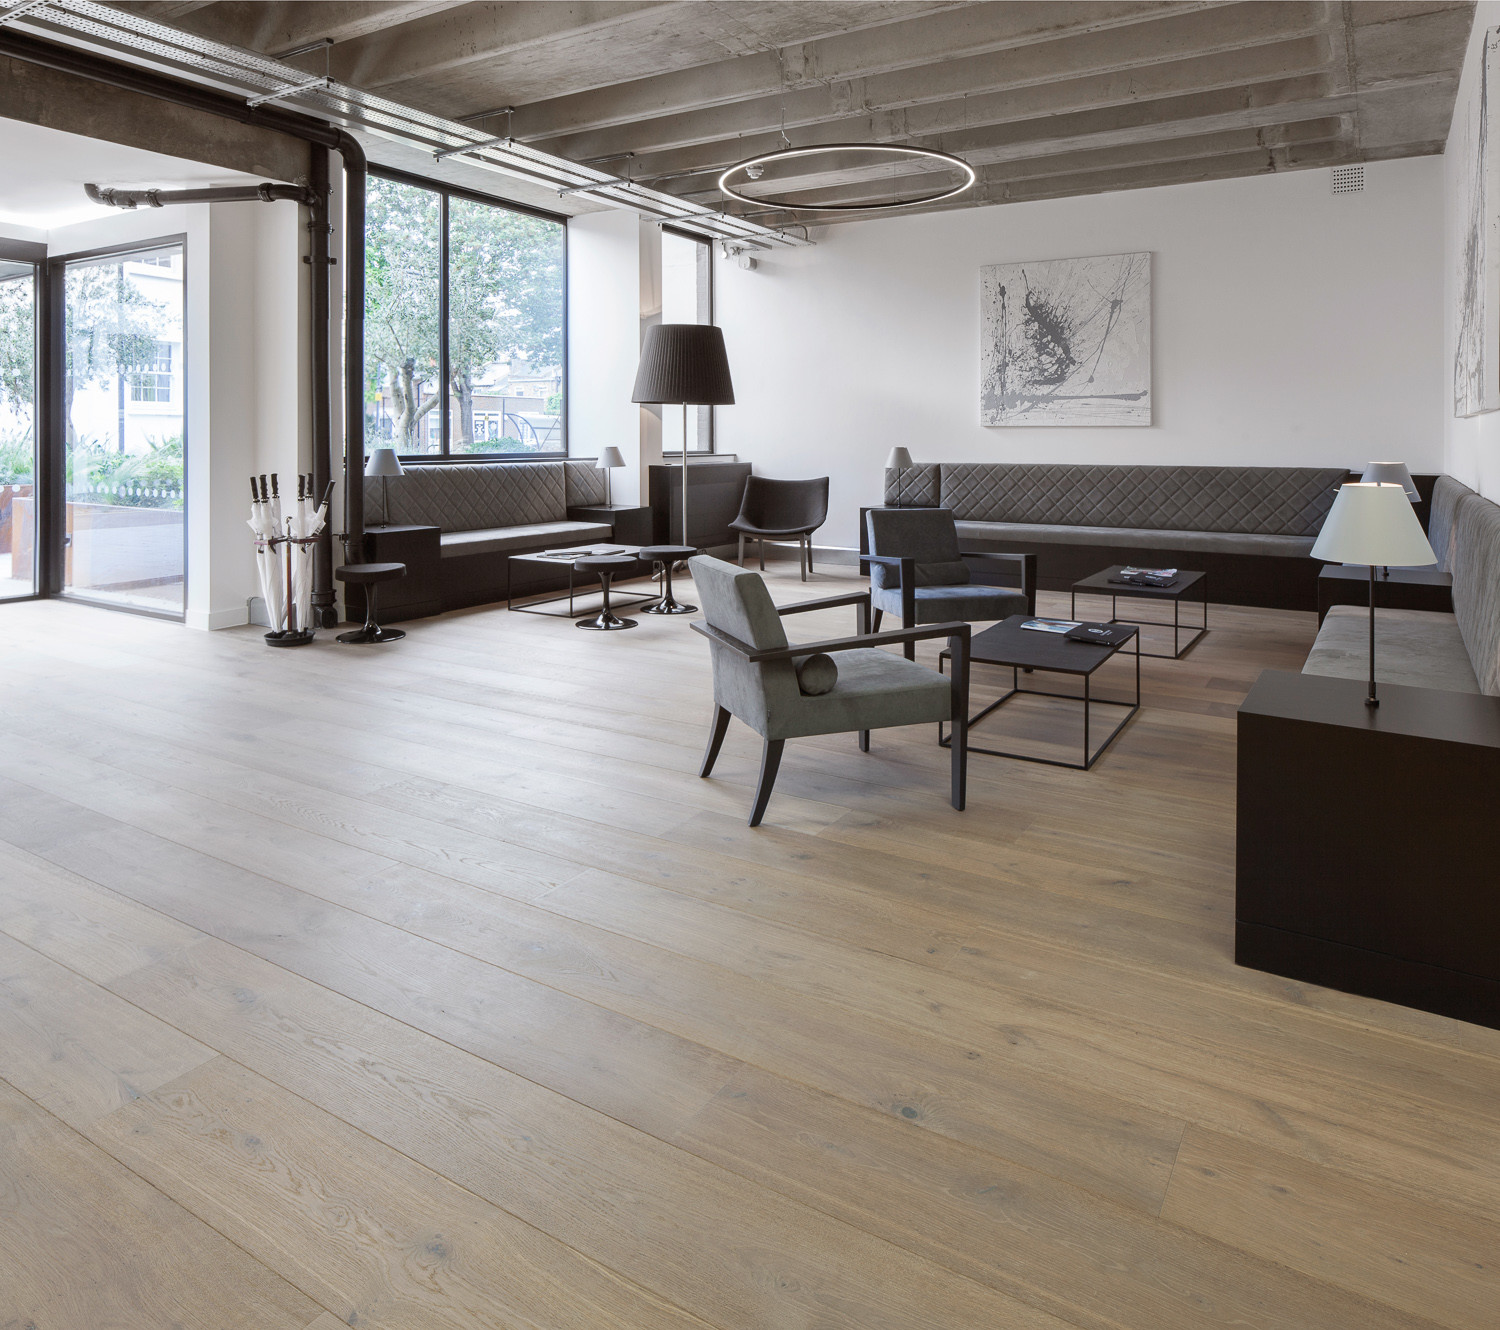 hardwood flooring outlet ontario of the new reclaimed flooring company for the report indicated that 82 of workers who were employed in places with eight or more wood surfaces had higher personal productivity mood concentration